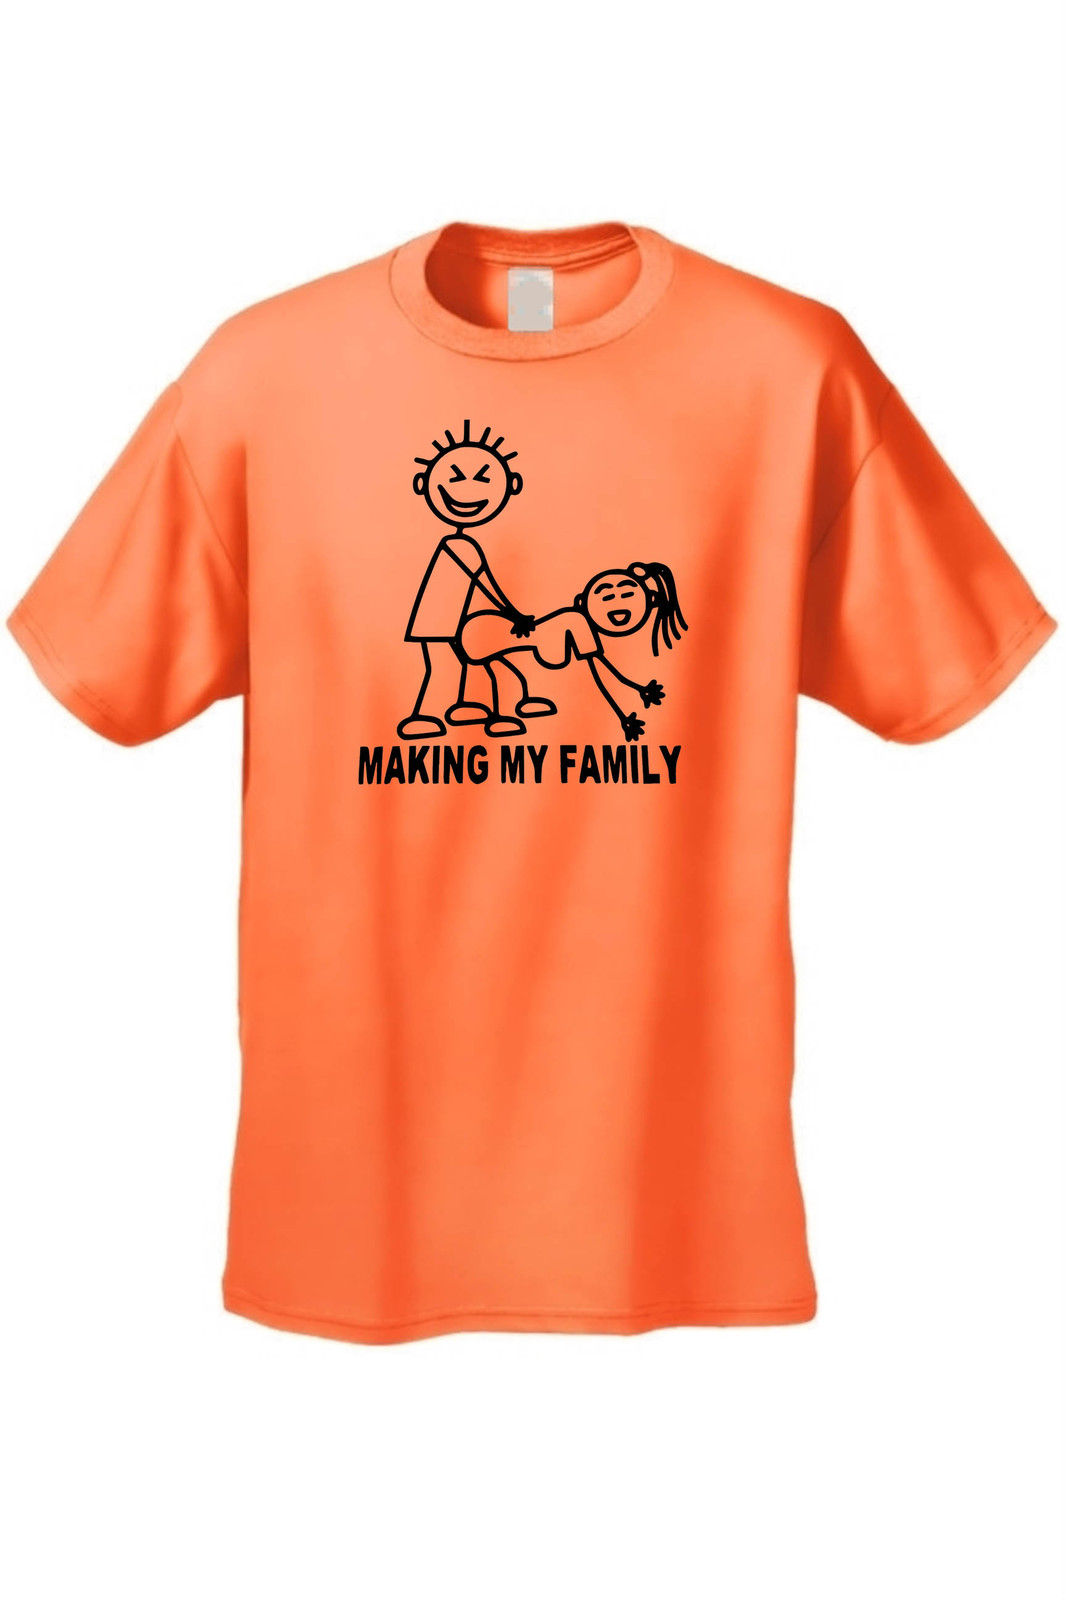 MEN'S FUNNY T-SHIRT Making My Family ADULT SEX HUMOR STICK ...